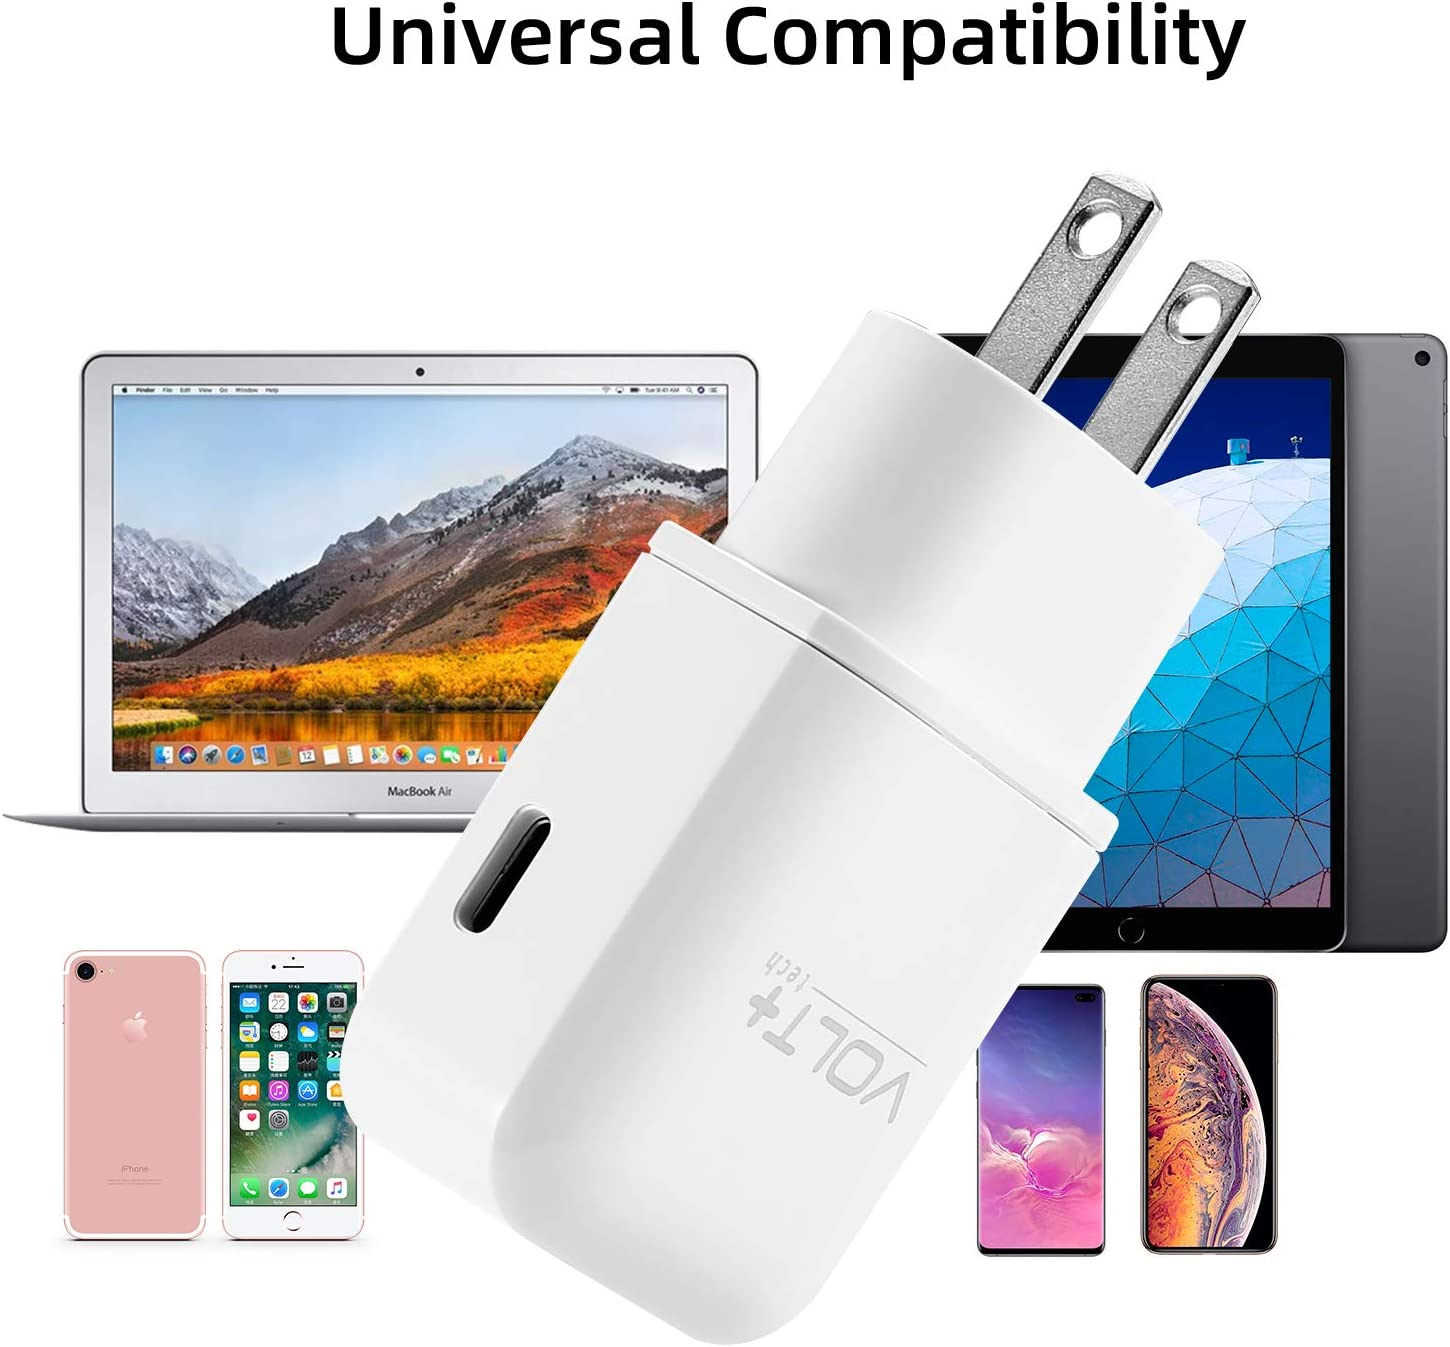 VOLT OEM Professional Kit Works with VoiceStar Mini USB Quick 21W Fast 3A Wall Charger with 5Ft//1.8M USB-C Cable!